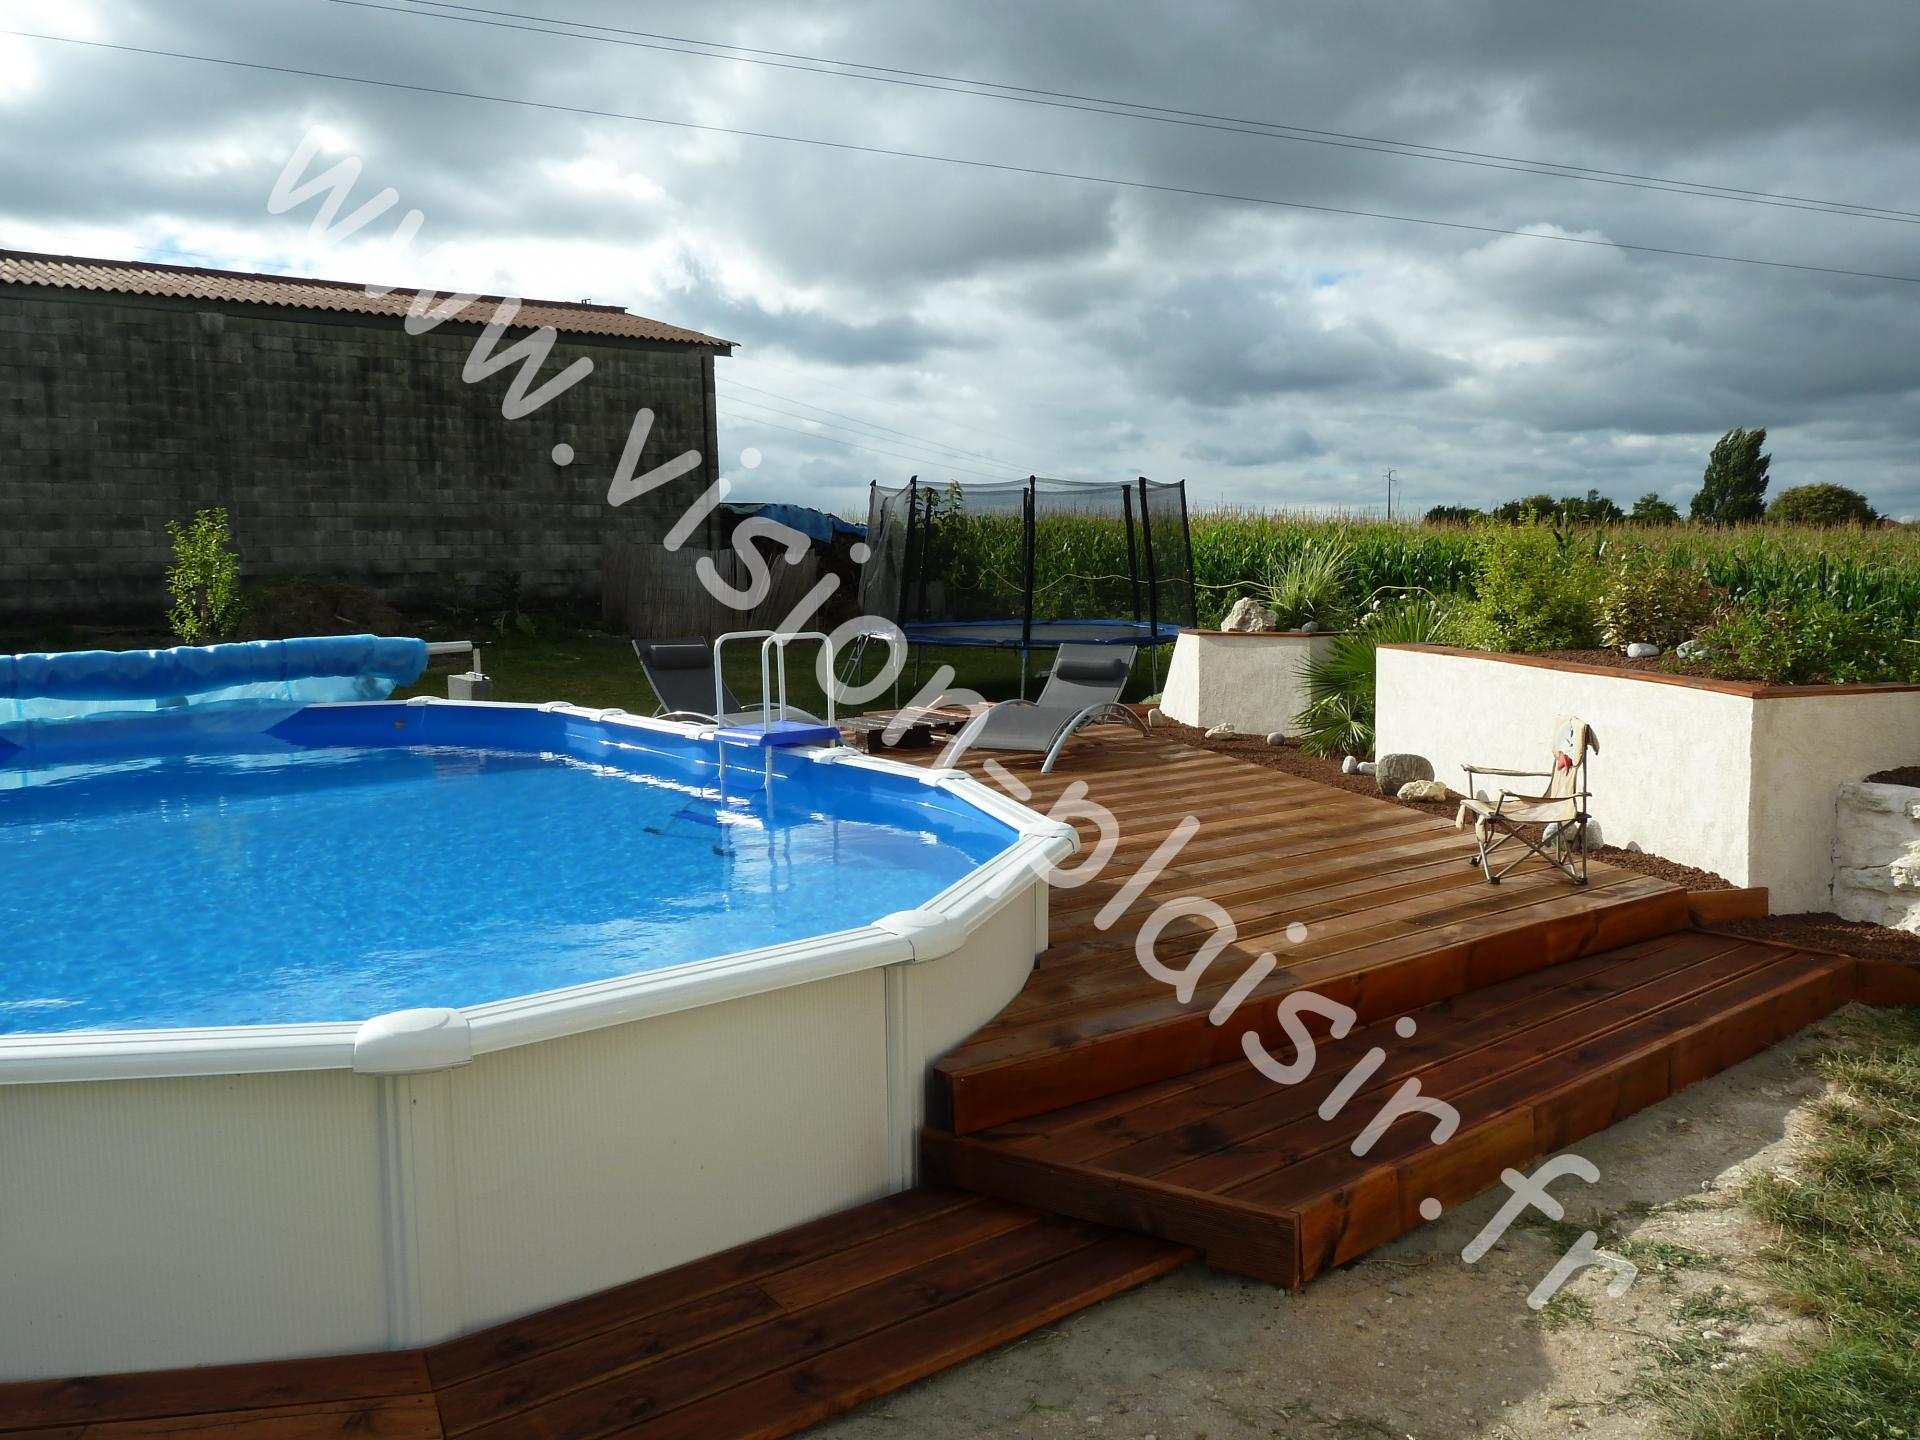 Blog de vision plaisir piscine hors sol semi enterr e for Piscine bois rectangulaire semi enterree